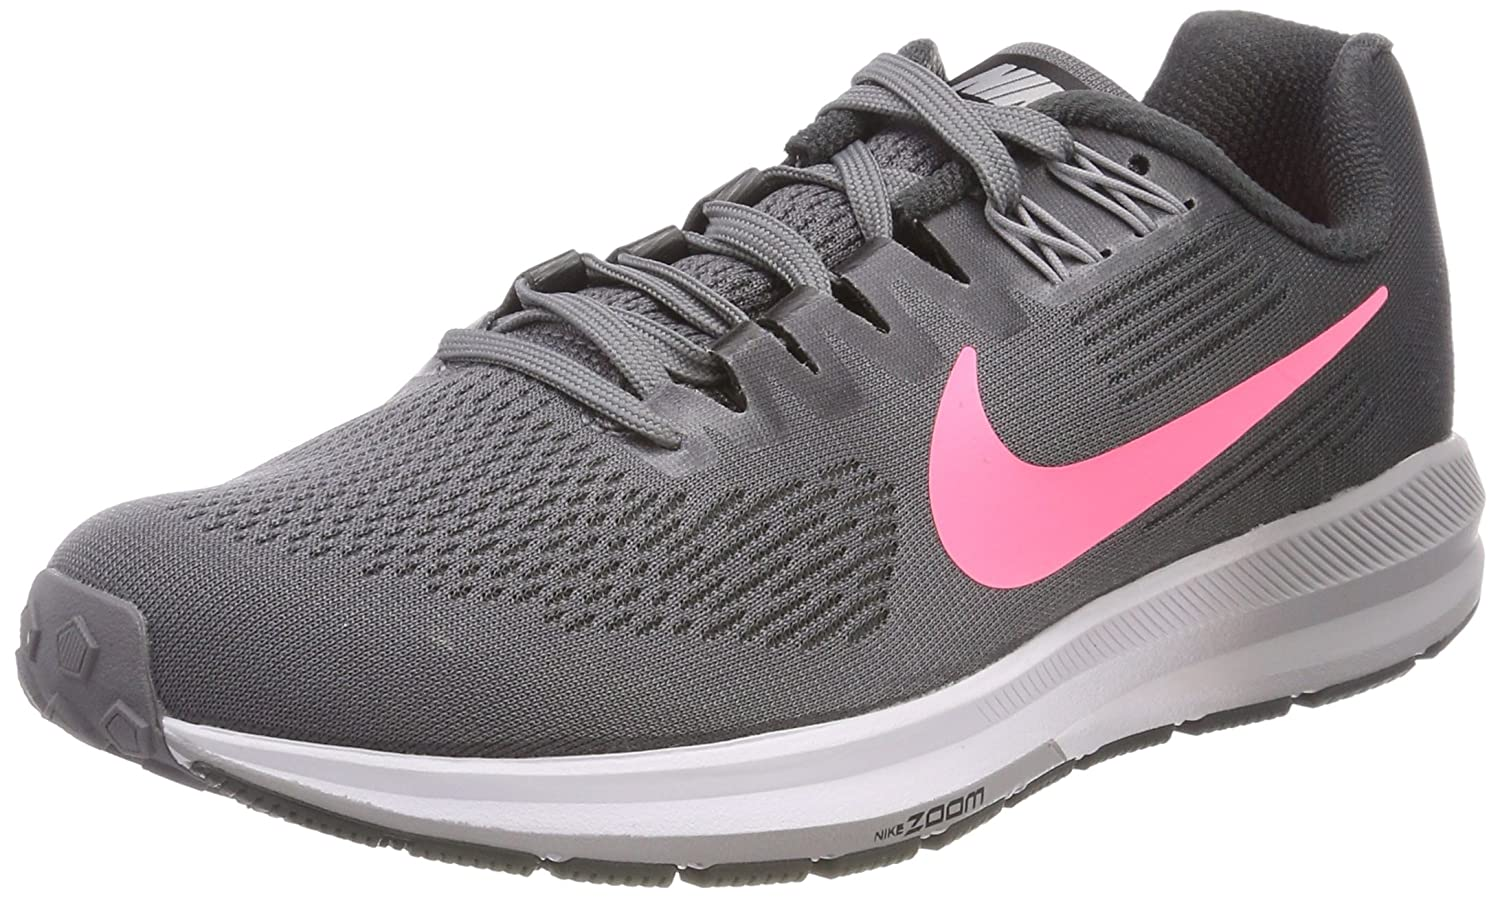 NIKE Women's Air Zoom Structure 21 Running Shoe B078HV83TK 8.5 B(M) US|Gunsmoke/Sunset Pulse